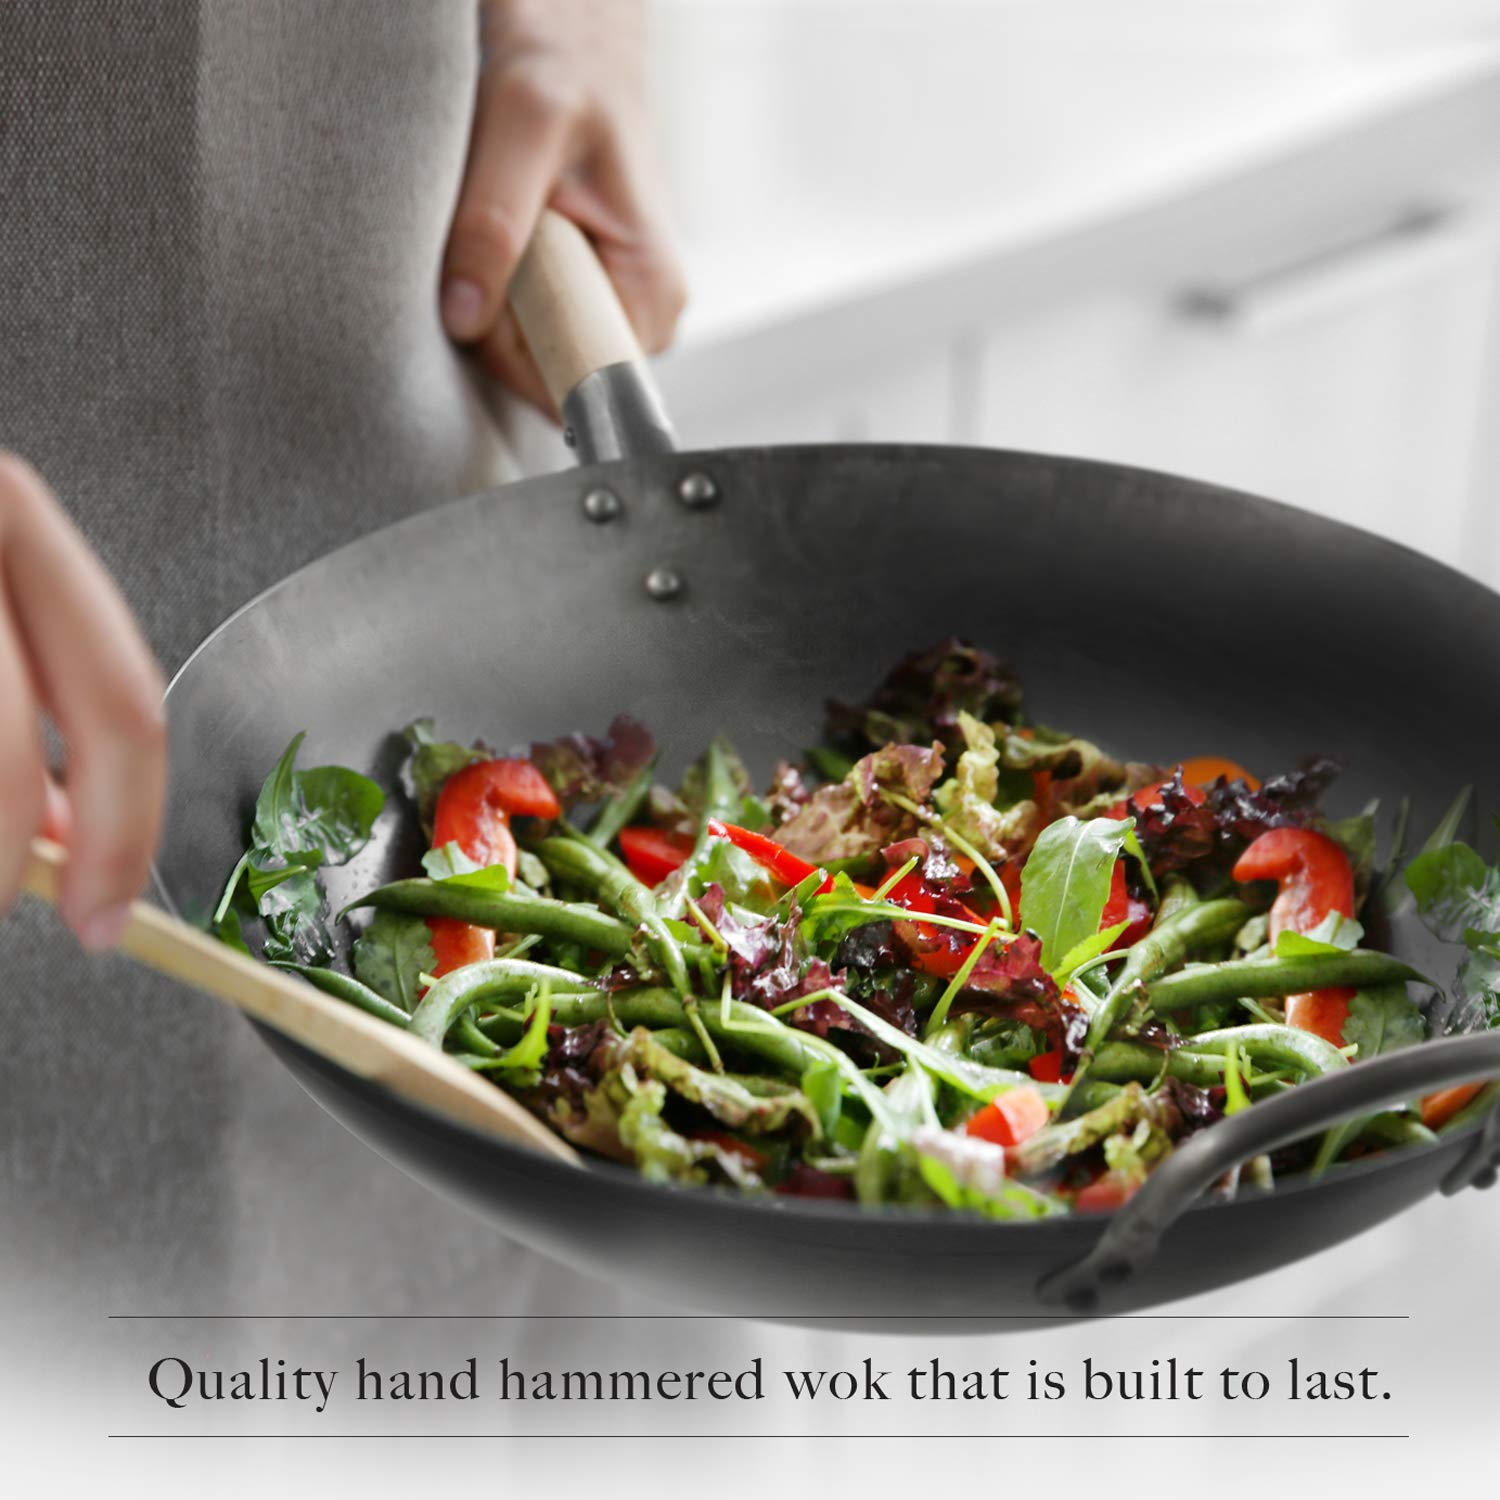 Flat Bottom Wok, Traditional Hand Hammered Wok, 14 Inch Carbon Steel Chinese Pow Wok by Mammafong by Mammafong (Image #6)